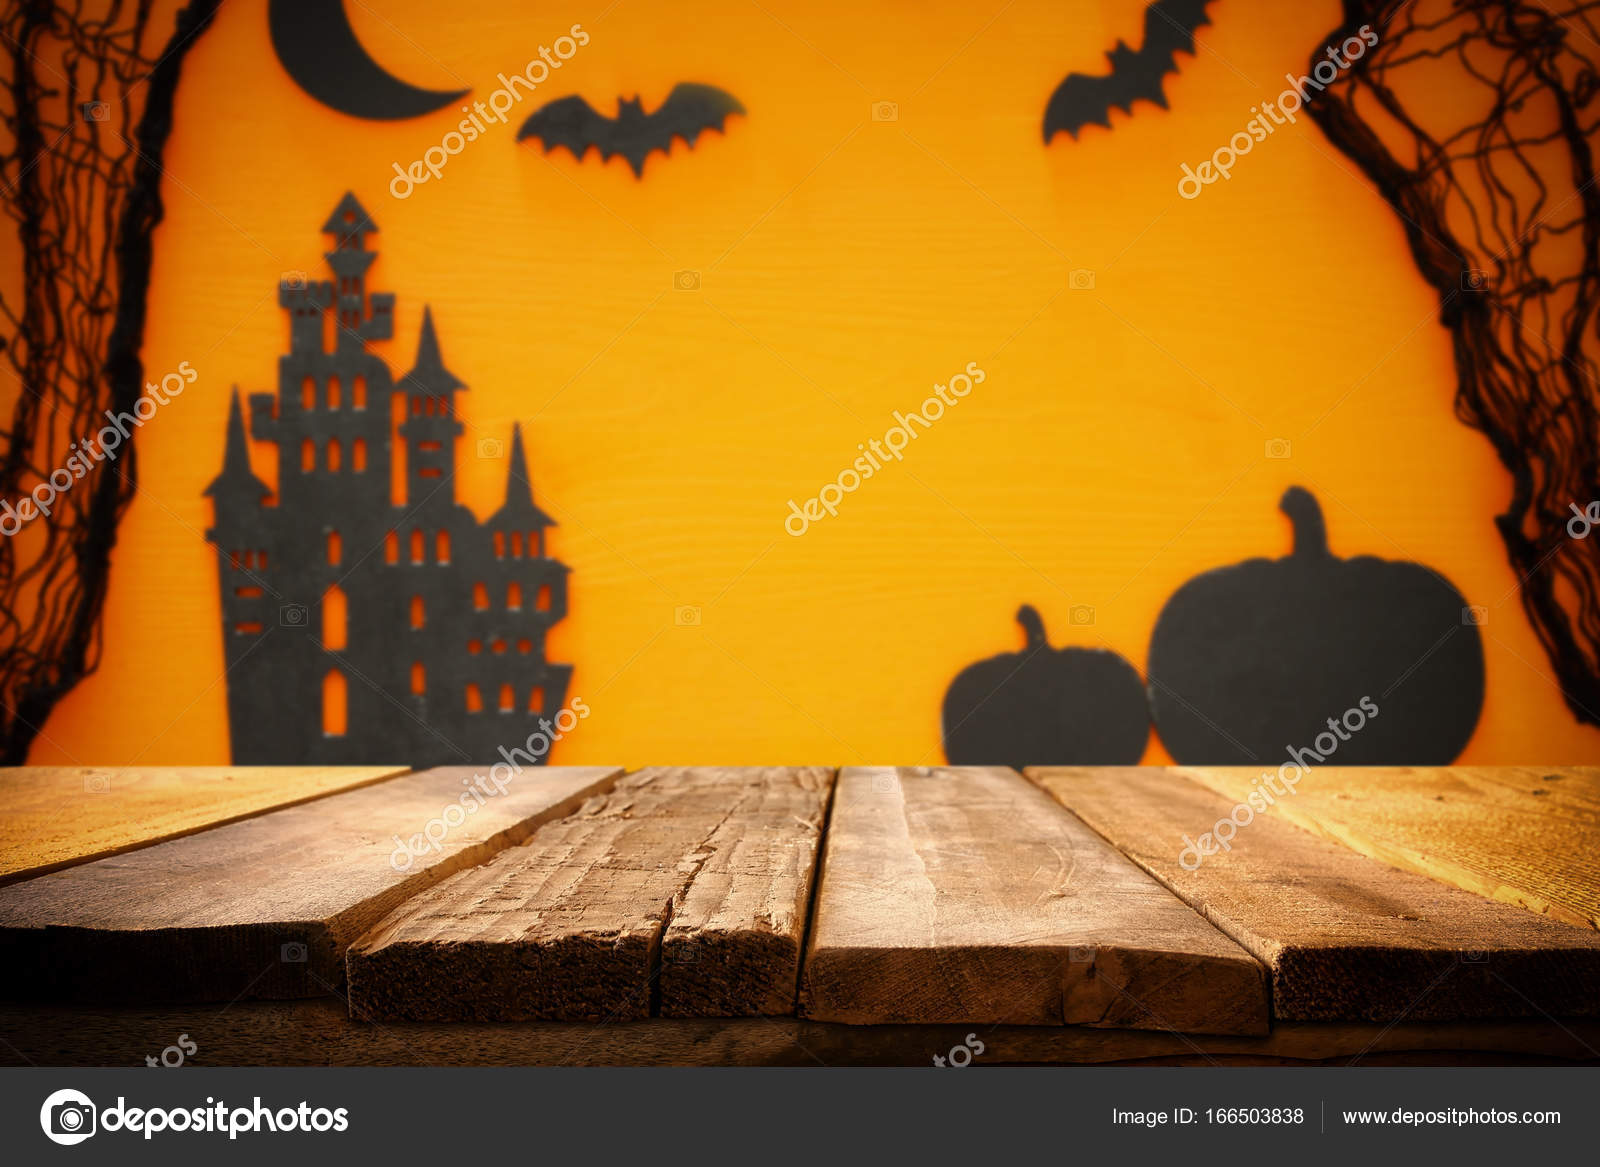 Halloween Holiday Concept Empty Rustic Table In Front Of Spider Web Pumpkins Witch House And Bats Background Ready For Product Display Montage Photo